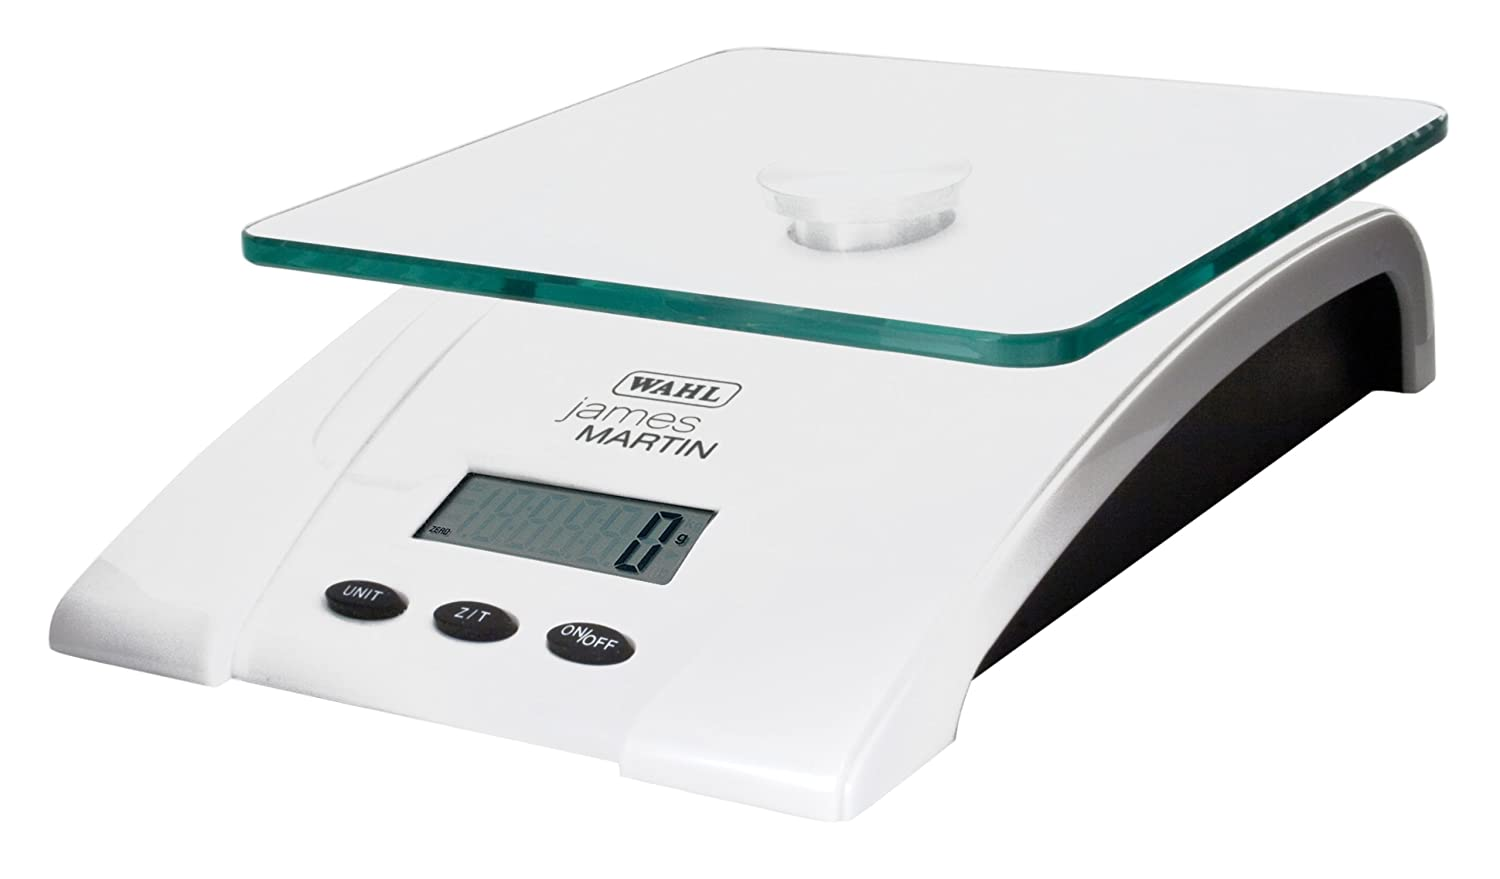 James Martin by Wahl ZX774 Digital Kitchen Scale: Amazon.co.uk ...